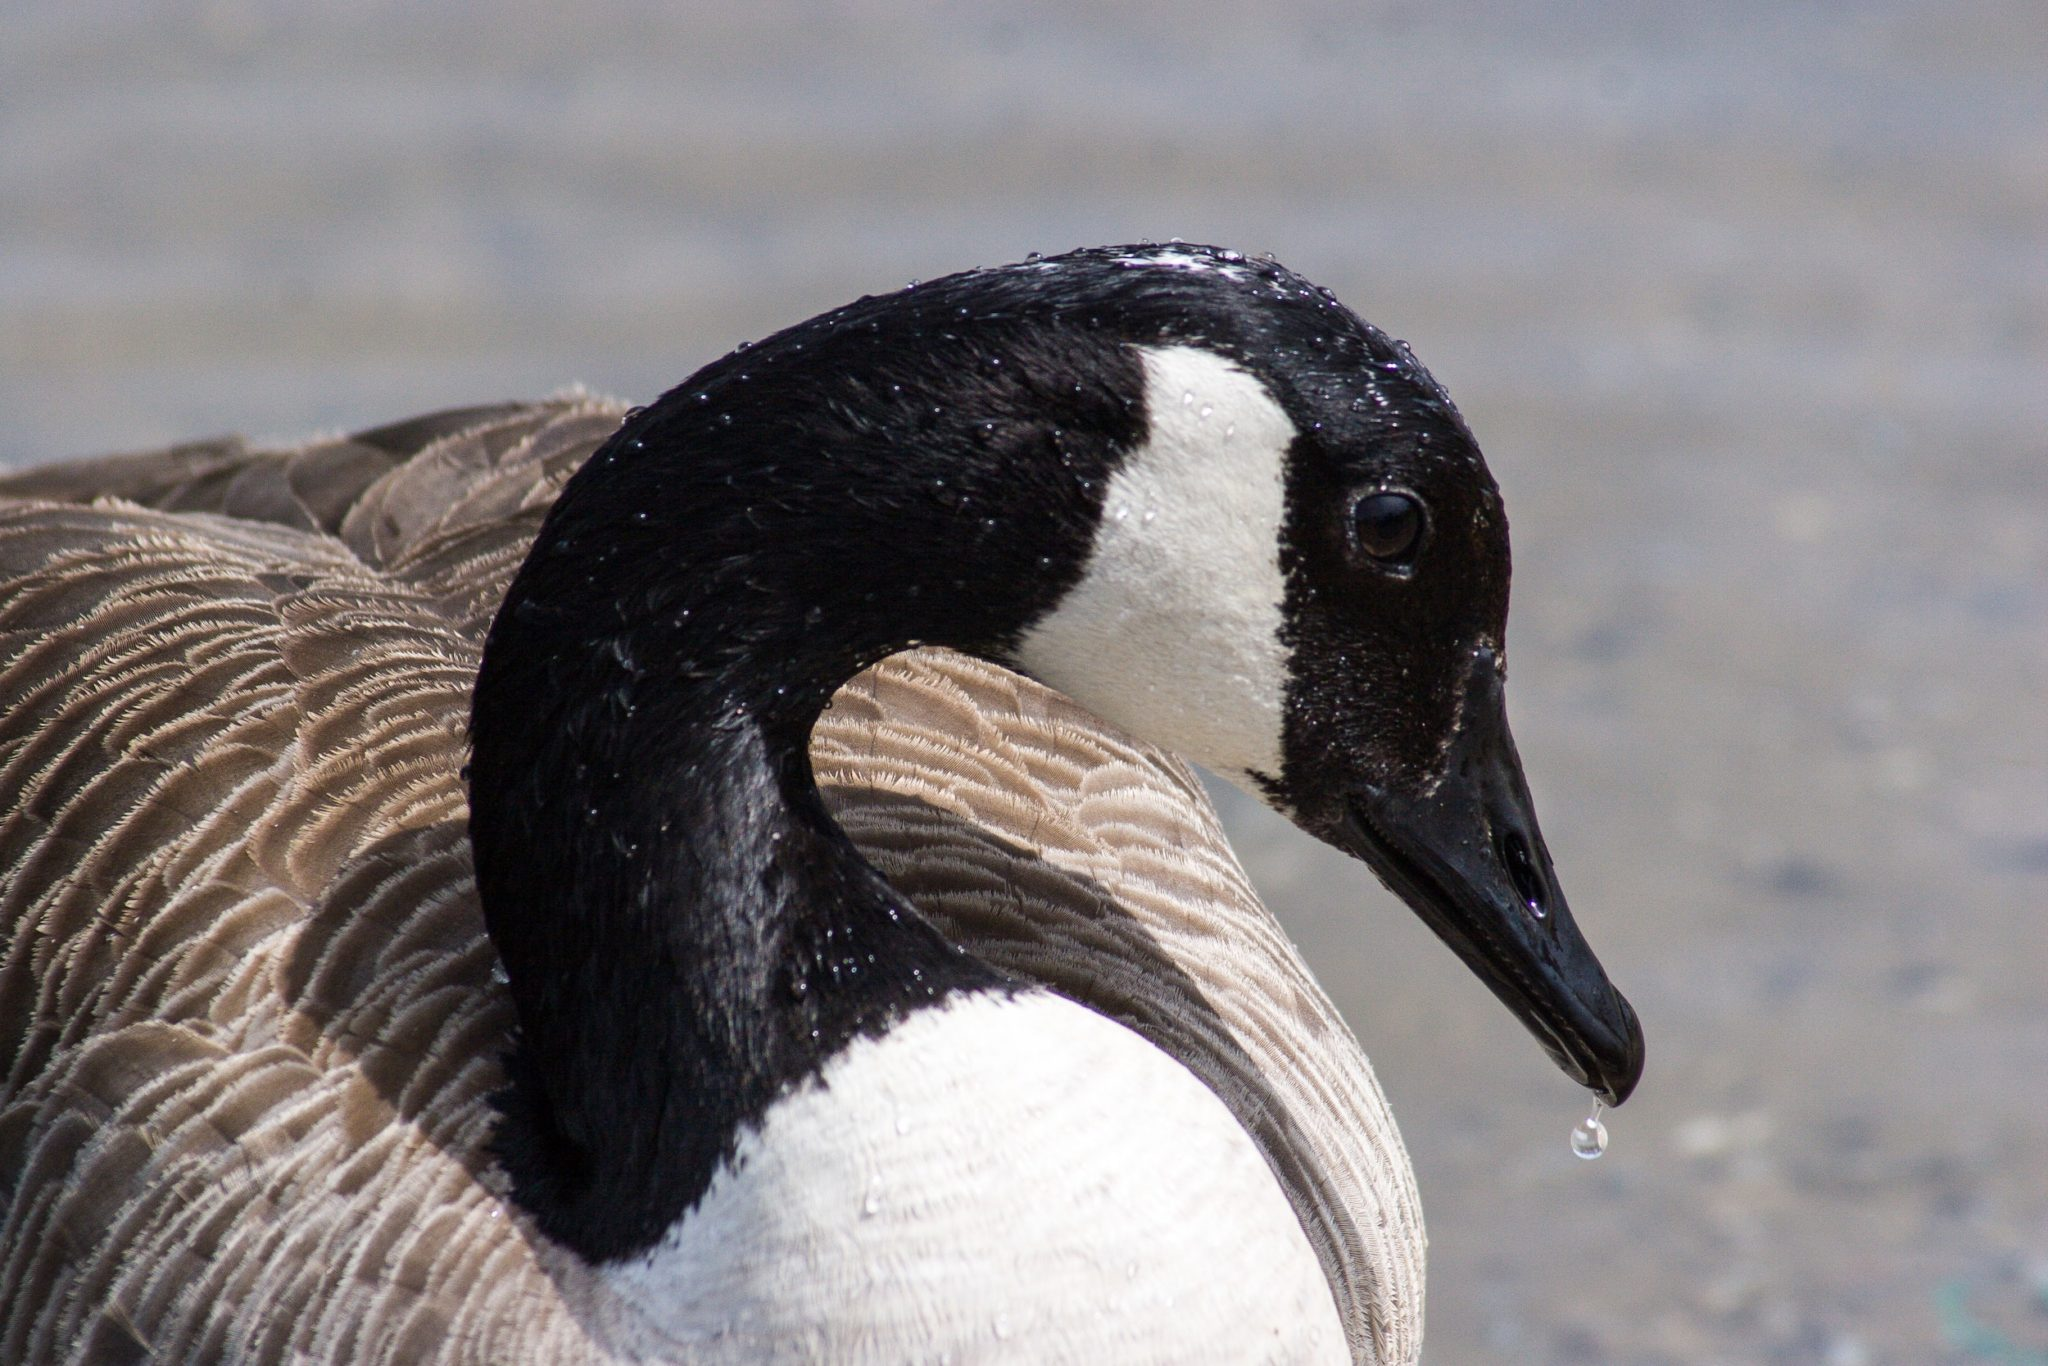 Results You Can Expect from Minnesota Goose Removal Using Dogs